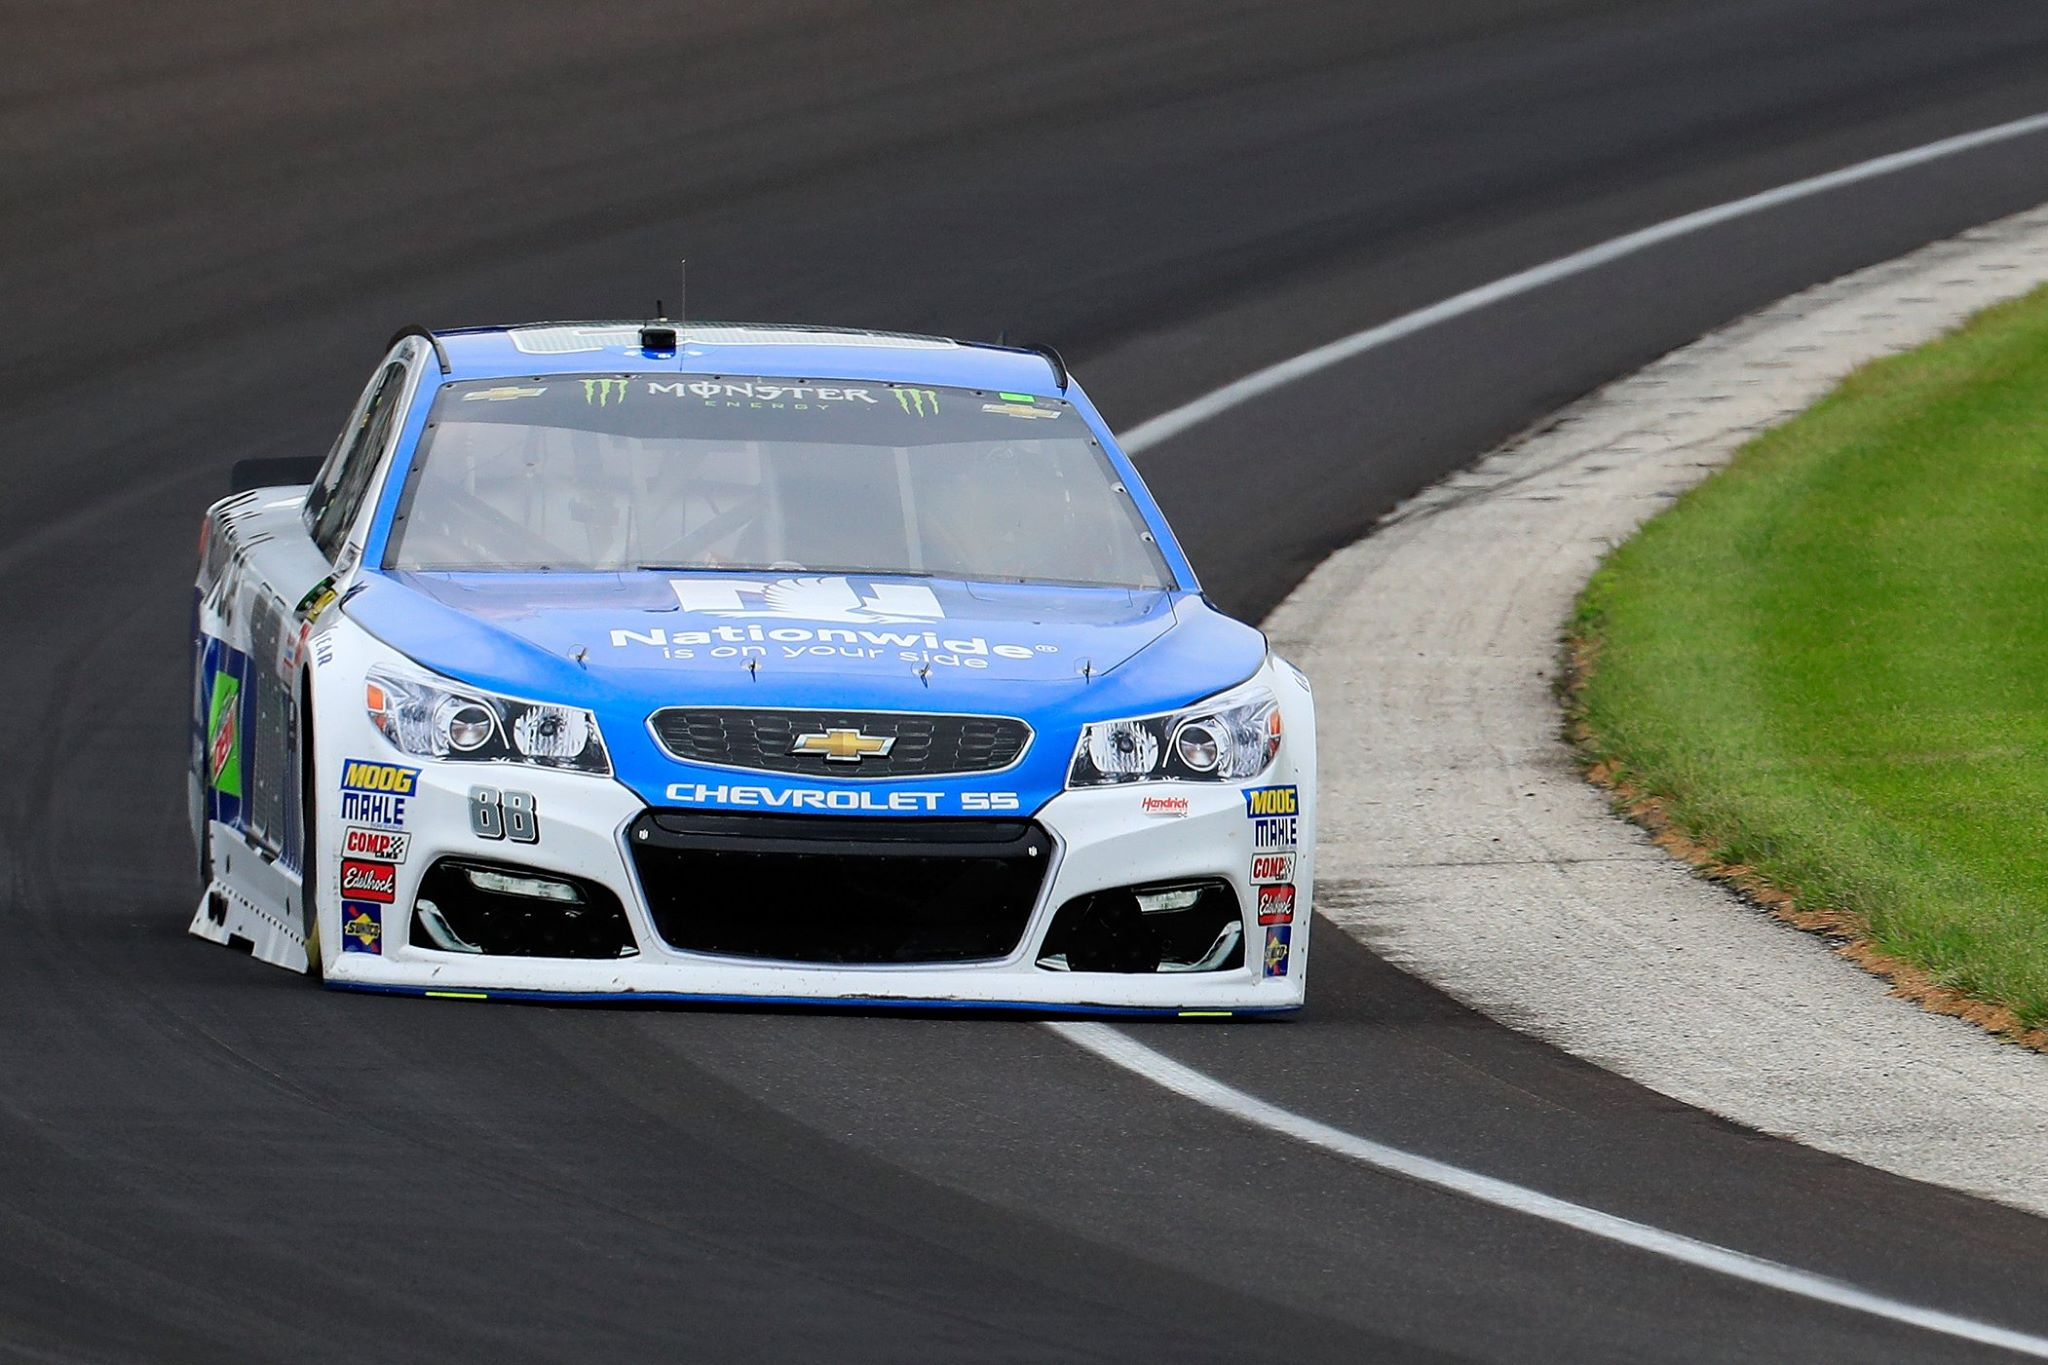 Dale Earnhardt Jr at Indianapolis Motor Speedway